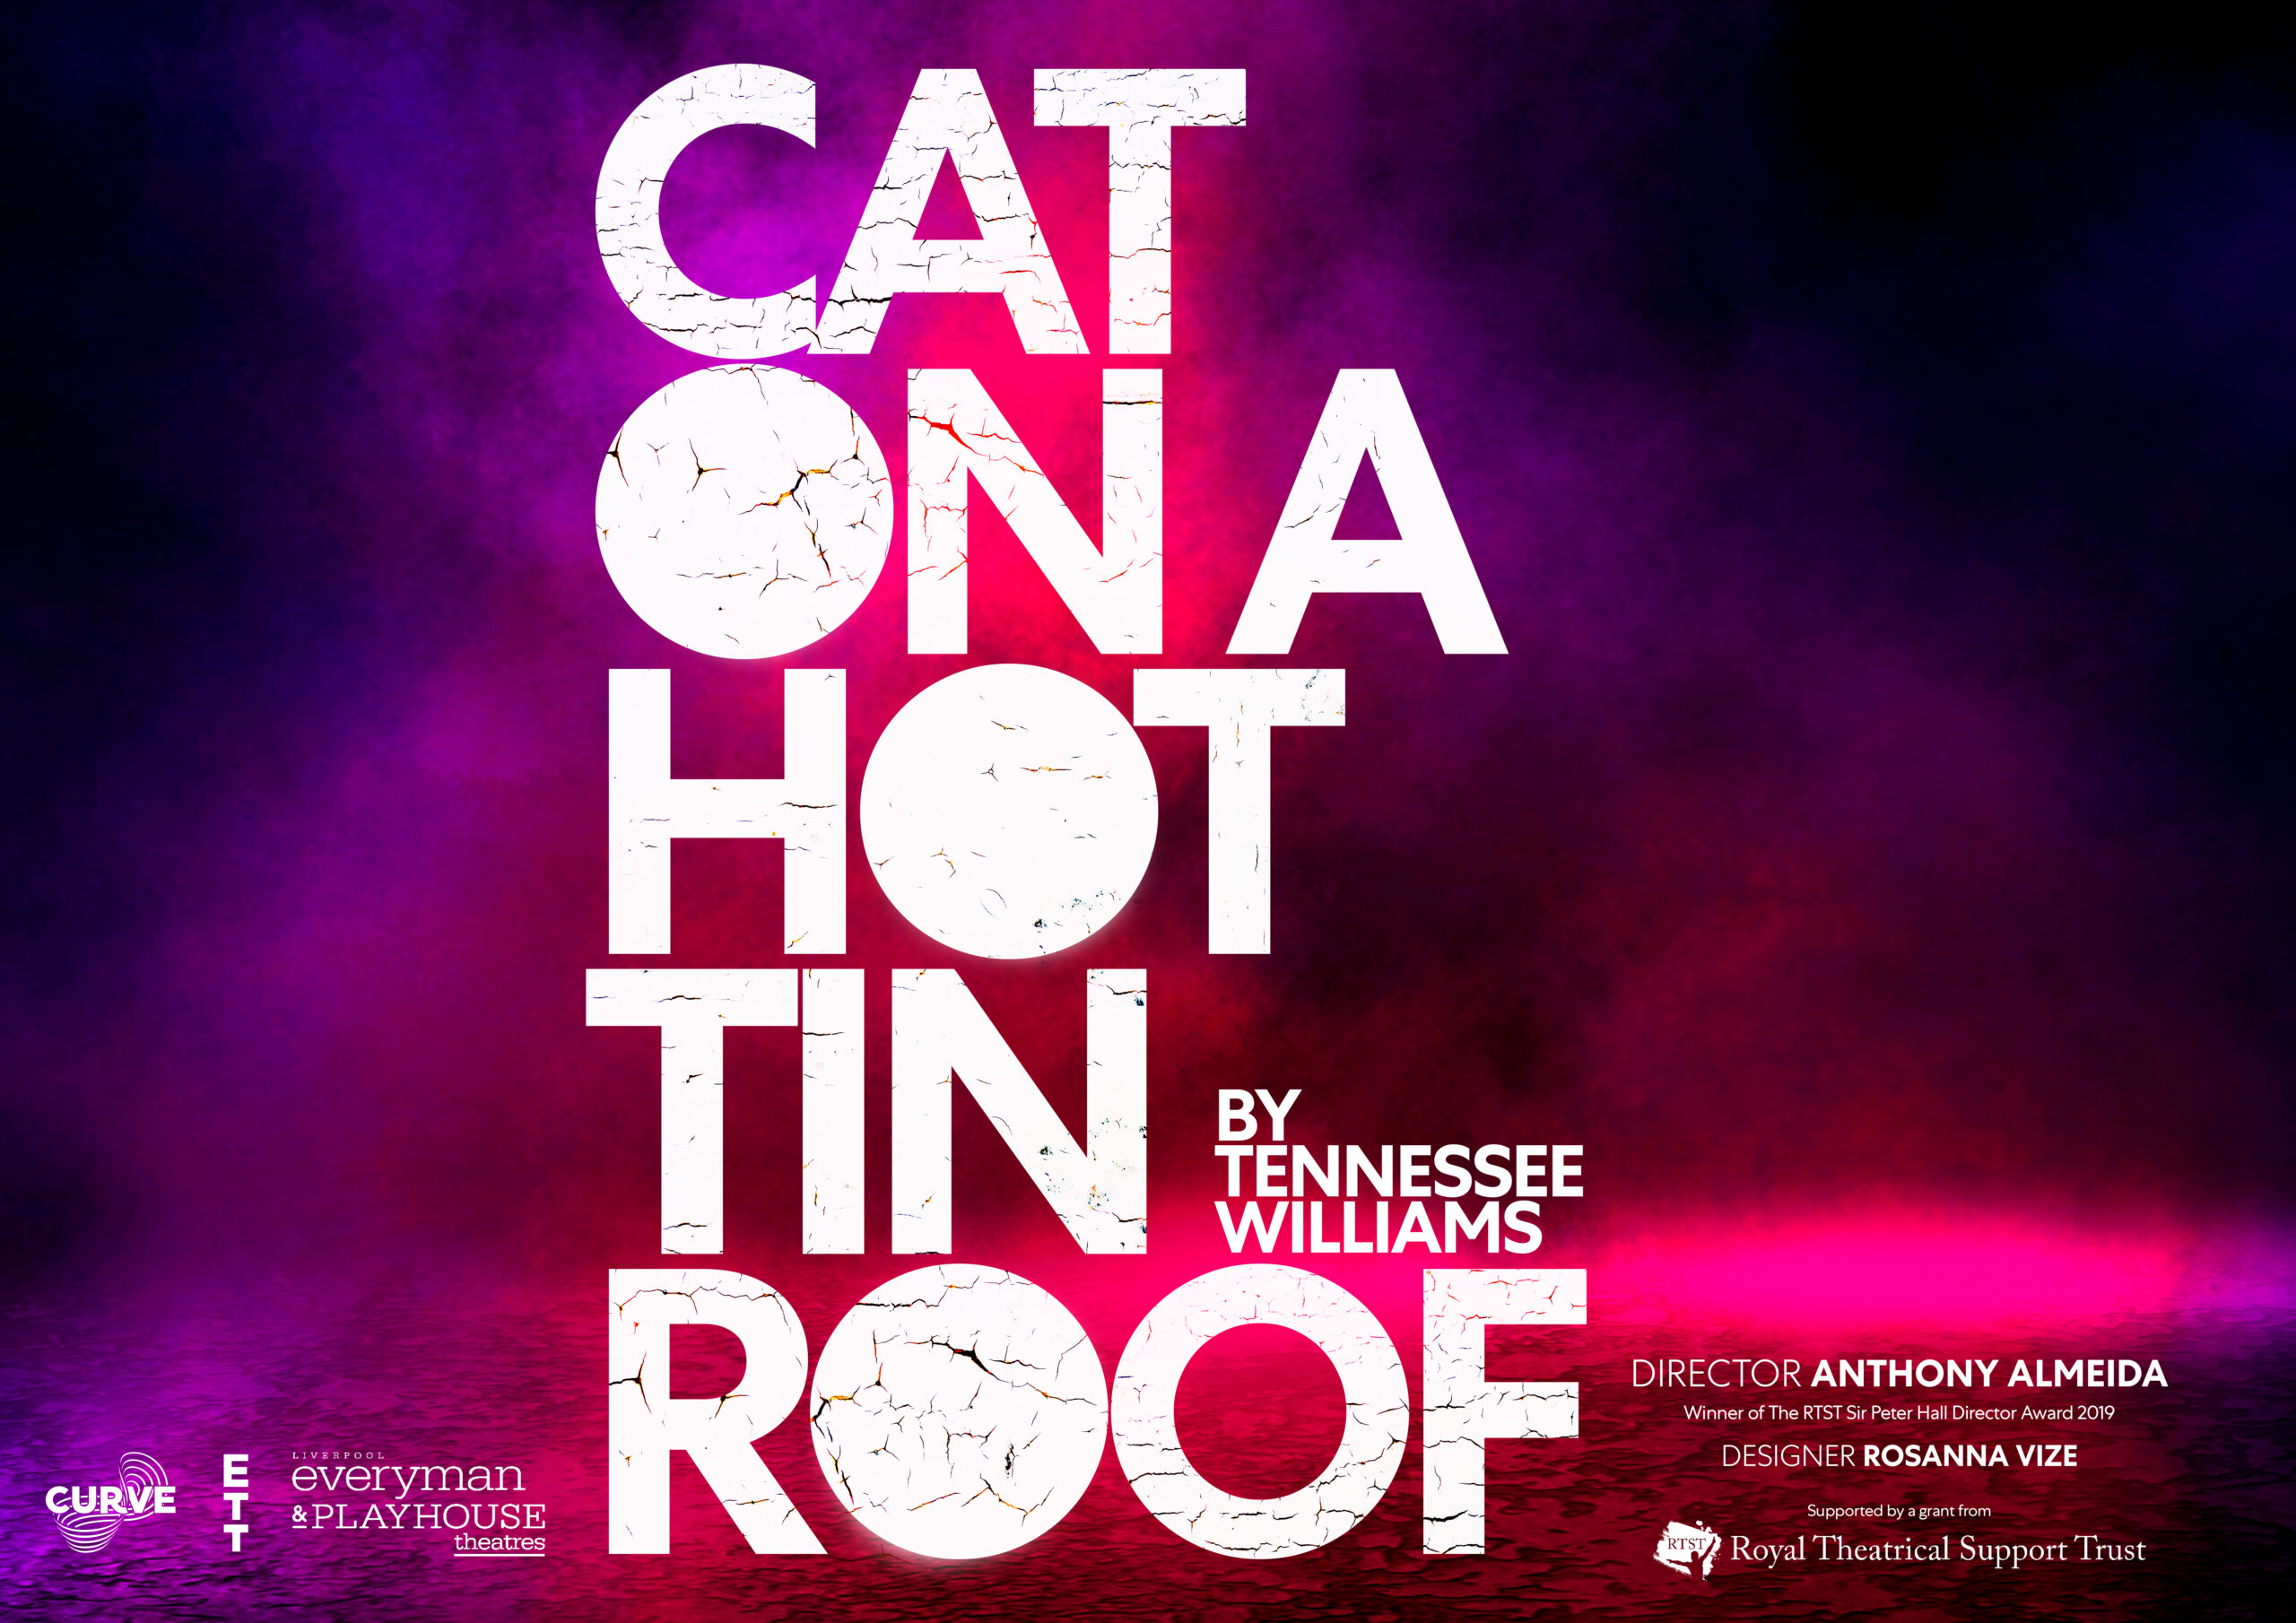 'Cat on a Hot Tin Roof'